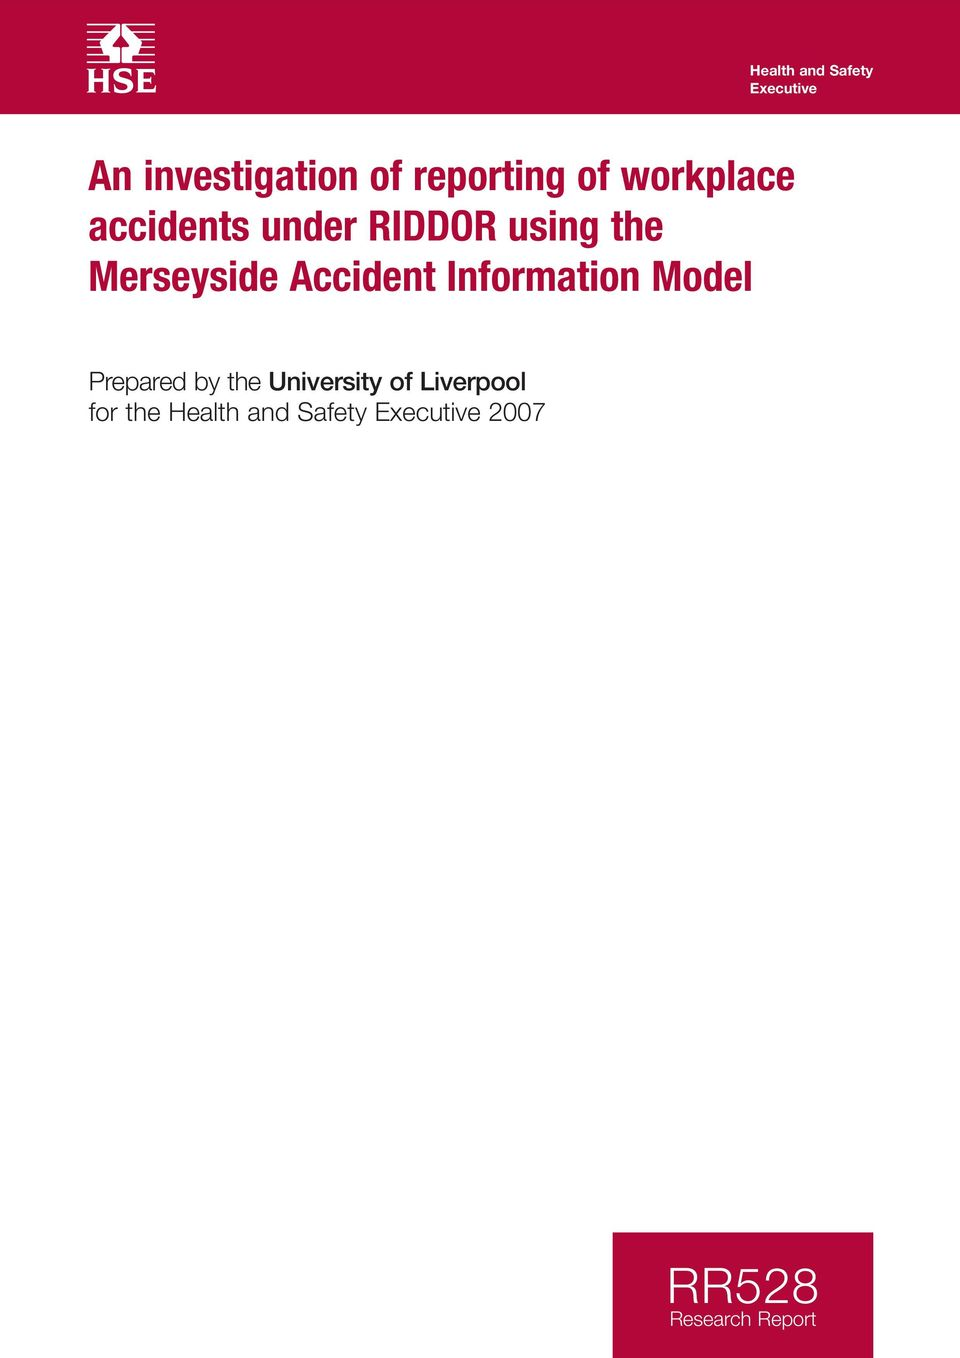 Accident Information Model Prepared by the University of